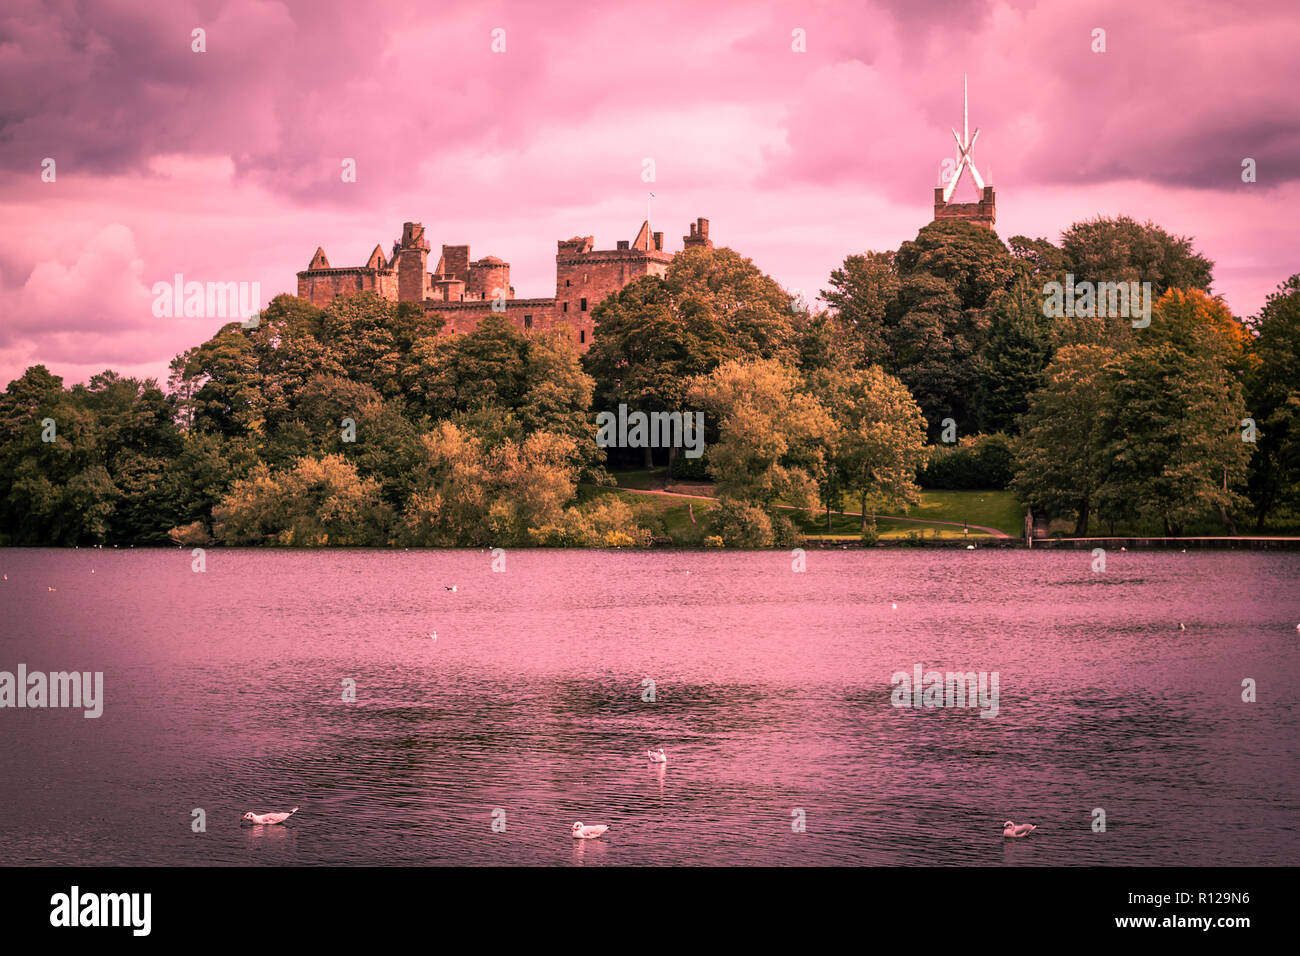 St. Michael's Church and Linlithgow Palace in Linlithgow, Scotland Stock Photo